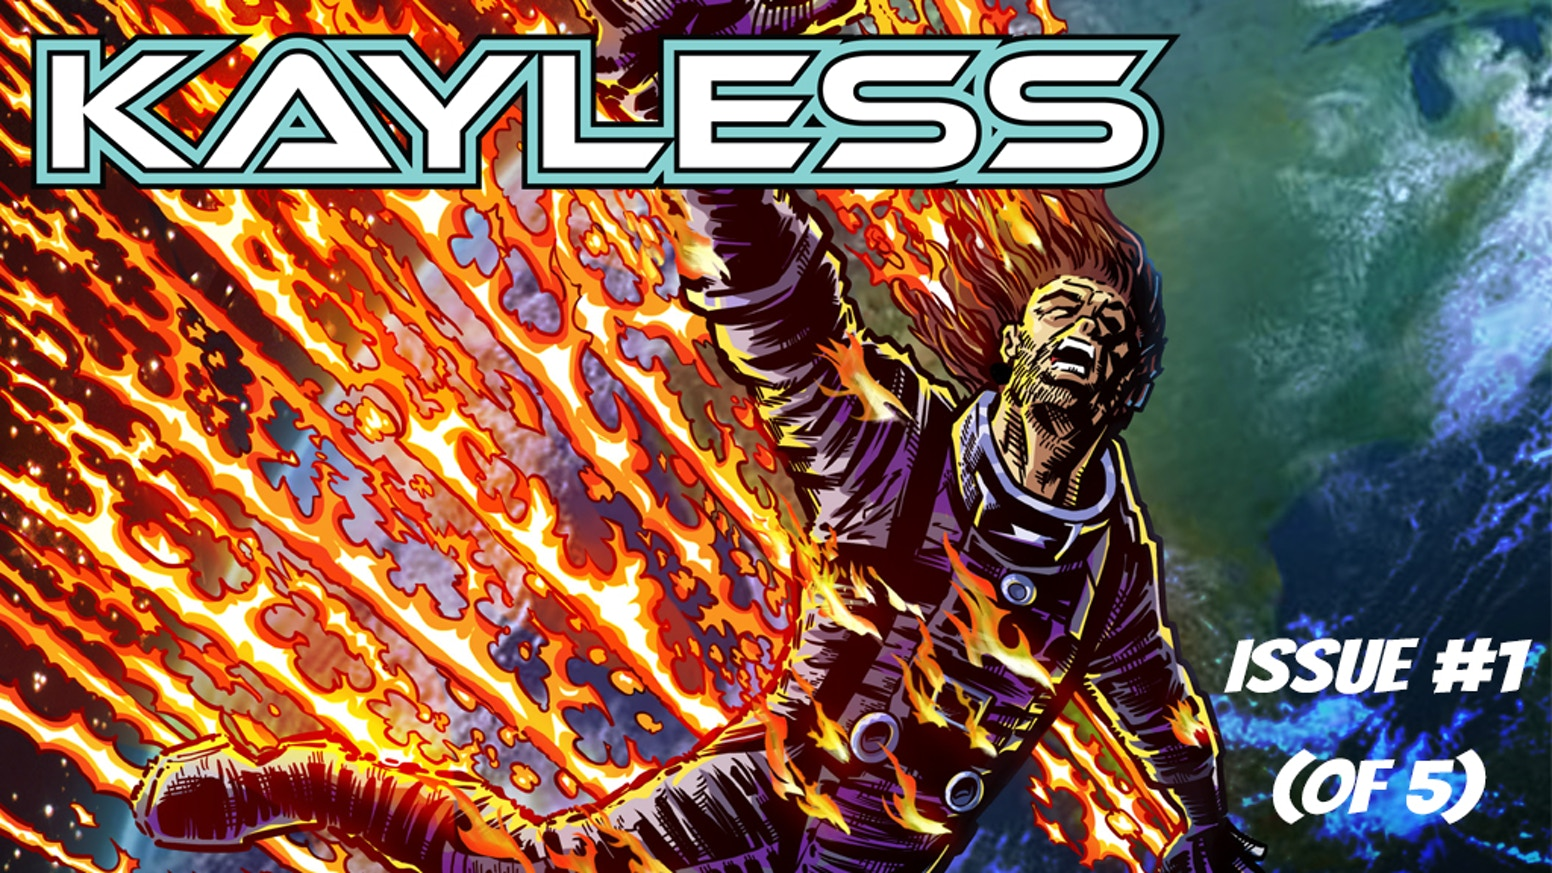 Kayless issue #1 by Brent Larson, Luis Czerniawski, and Leandro Huergo